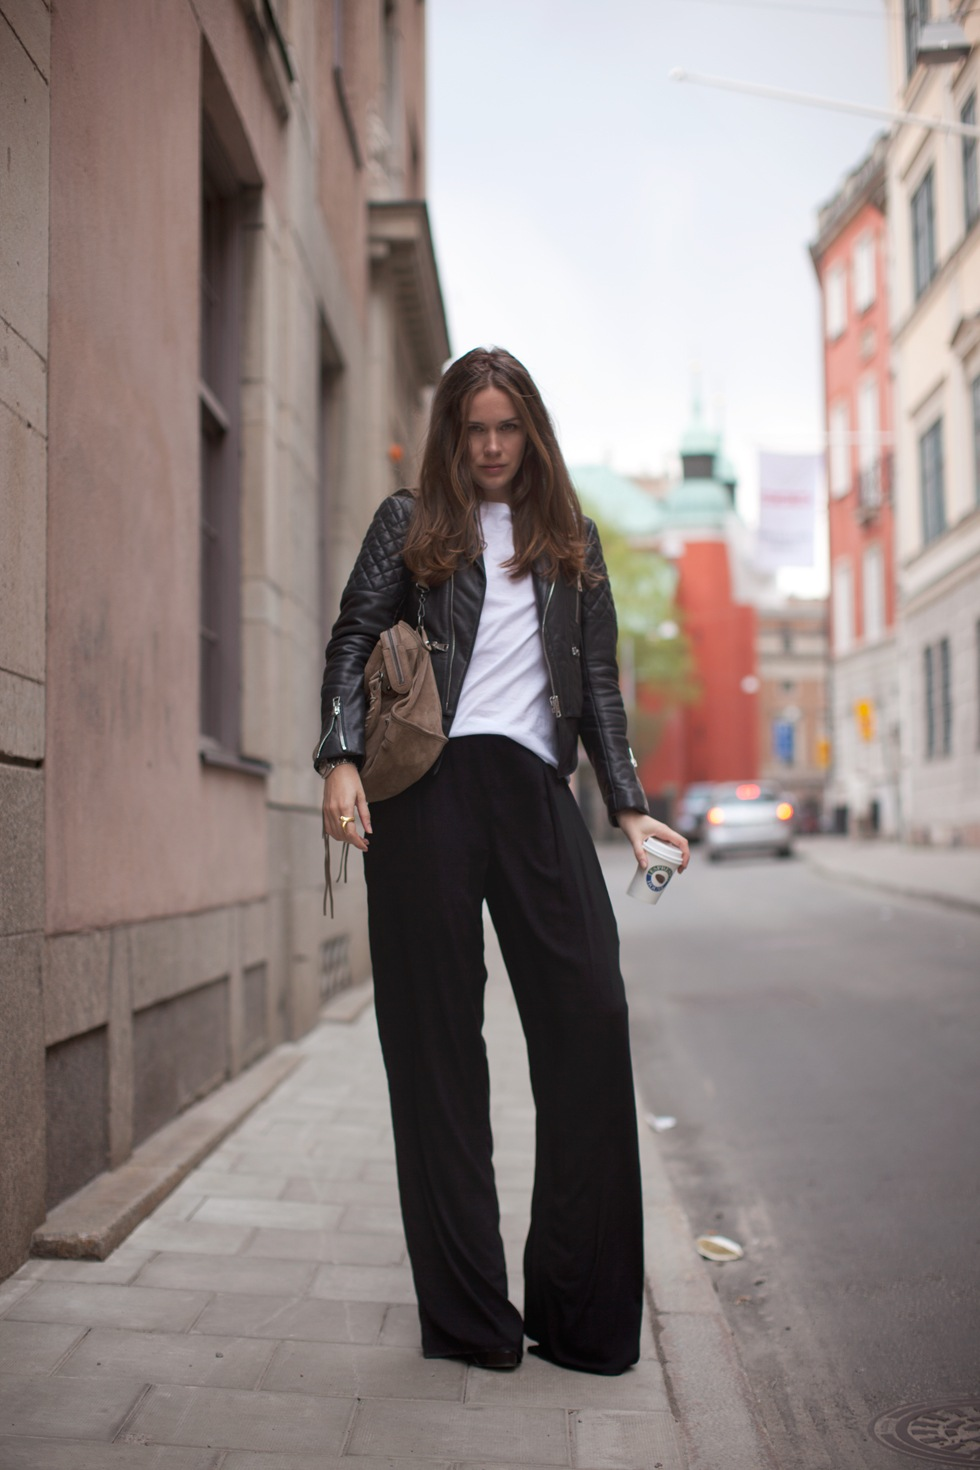 Old Navy offers black pants for women in trousers, chinos, dress capris, khakis and more. Our women's black pants are the classic design that can be worn for almost any occasion. Our large assortment of styles and sizes give you the ability to find a pair of women's black pants .